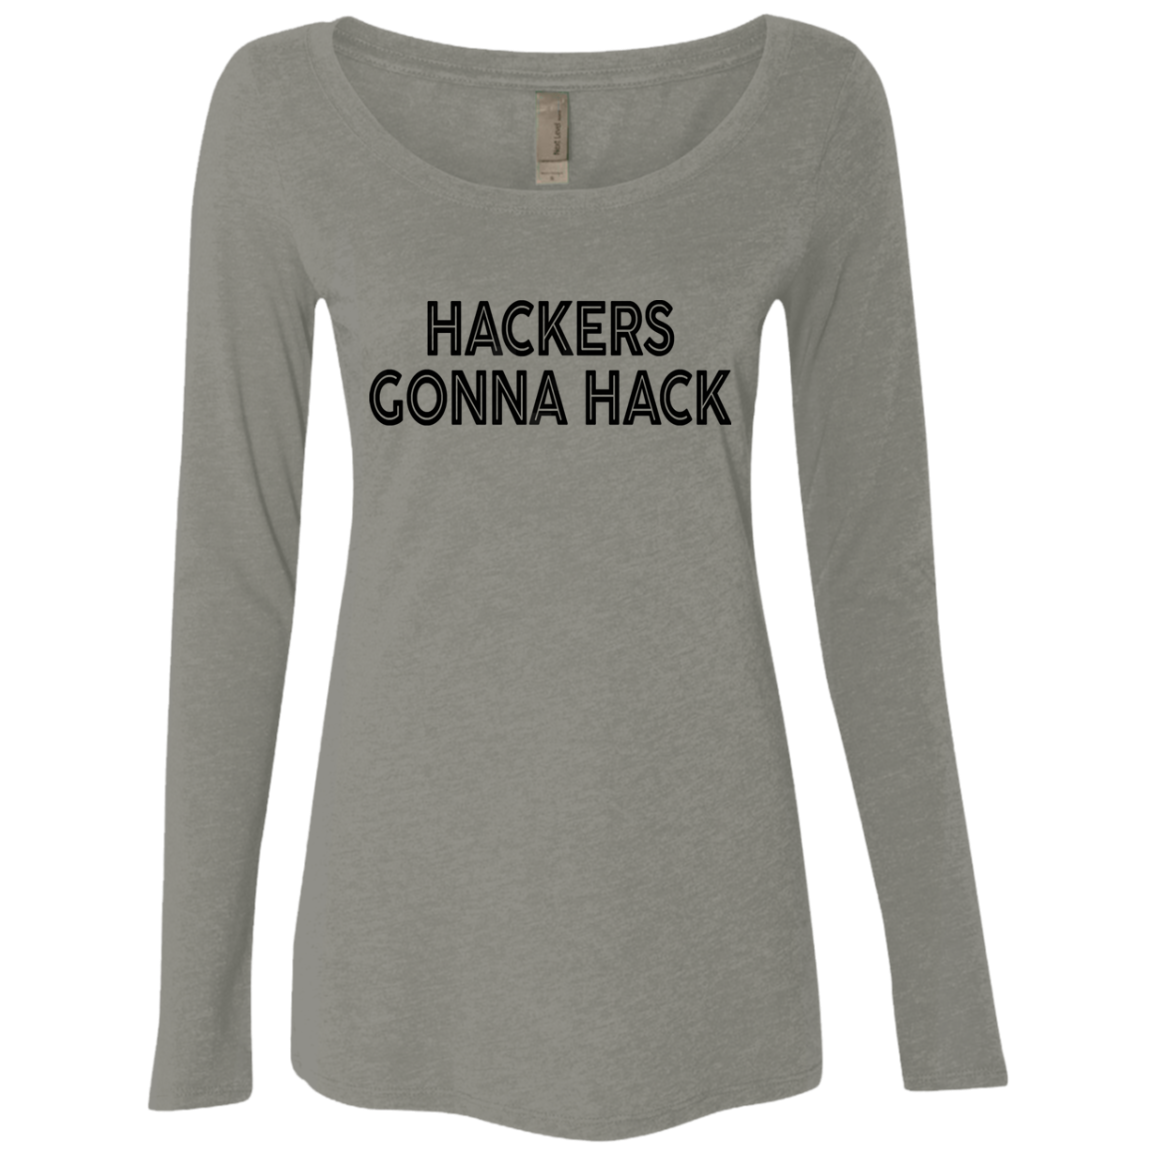 Hackers Gonna Hack Women's Long Sleeve Tee